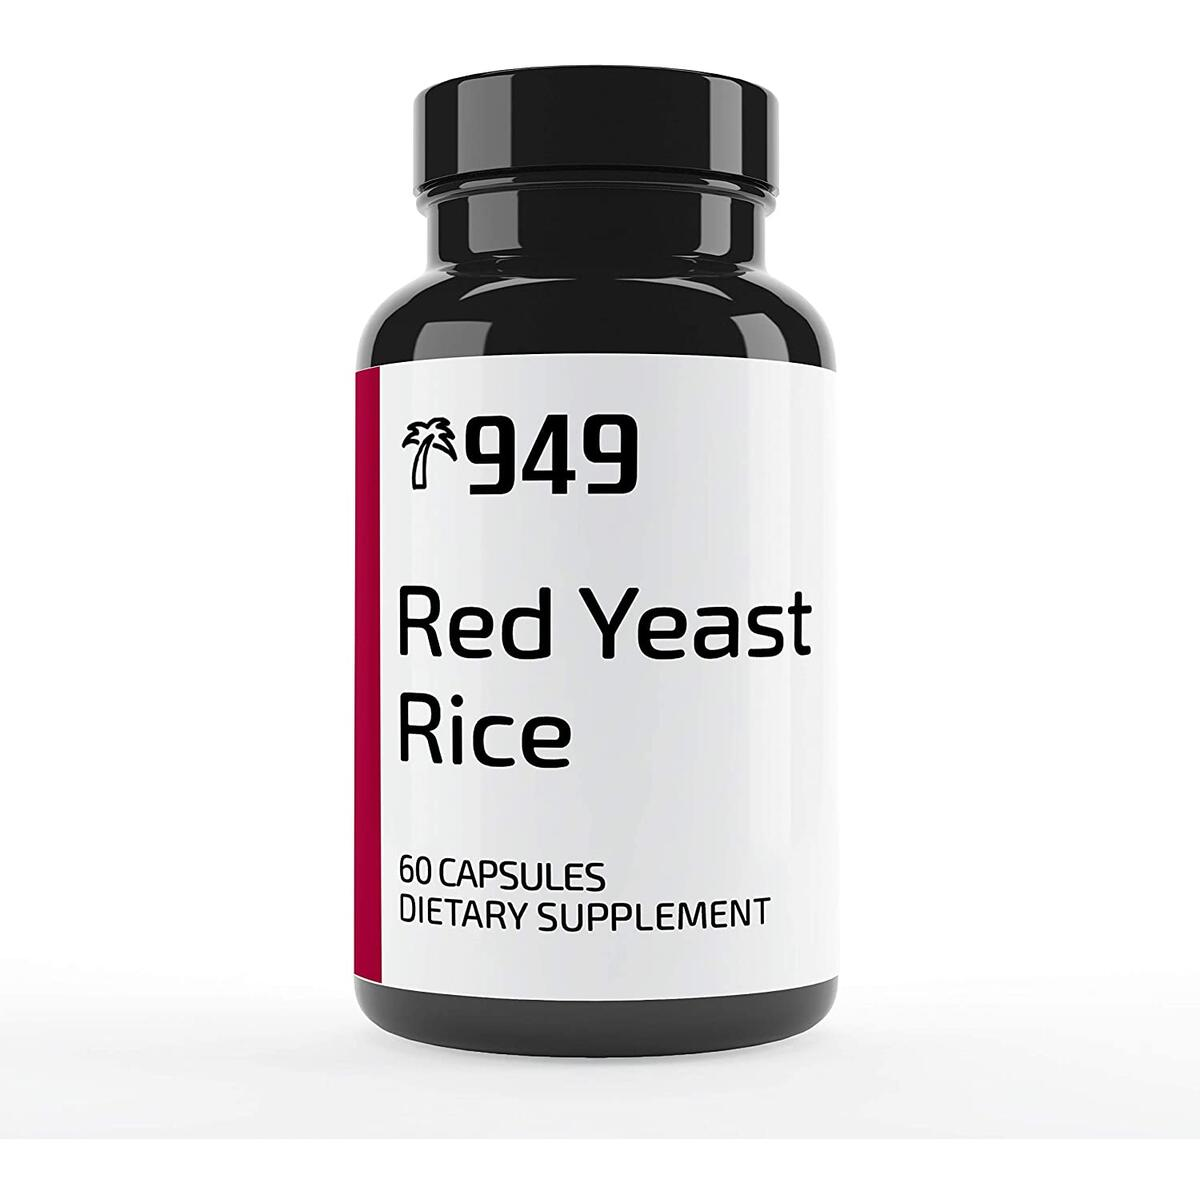 Red Yeast Rice, Under 10 Dollars, 60 Capsules, Manage Cholesterol Levels, Heart Health, No Additive or Fillers, Lab-Tested Purity, Made in USA, Satisfaction 100% Guaranteed, 949*